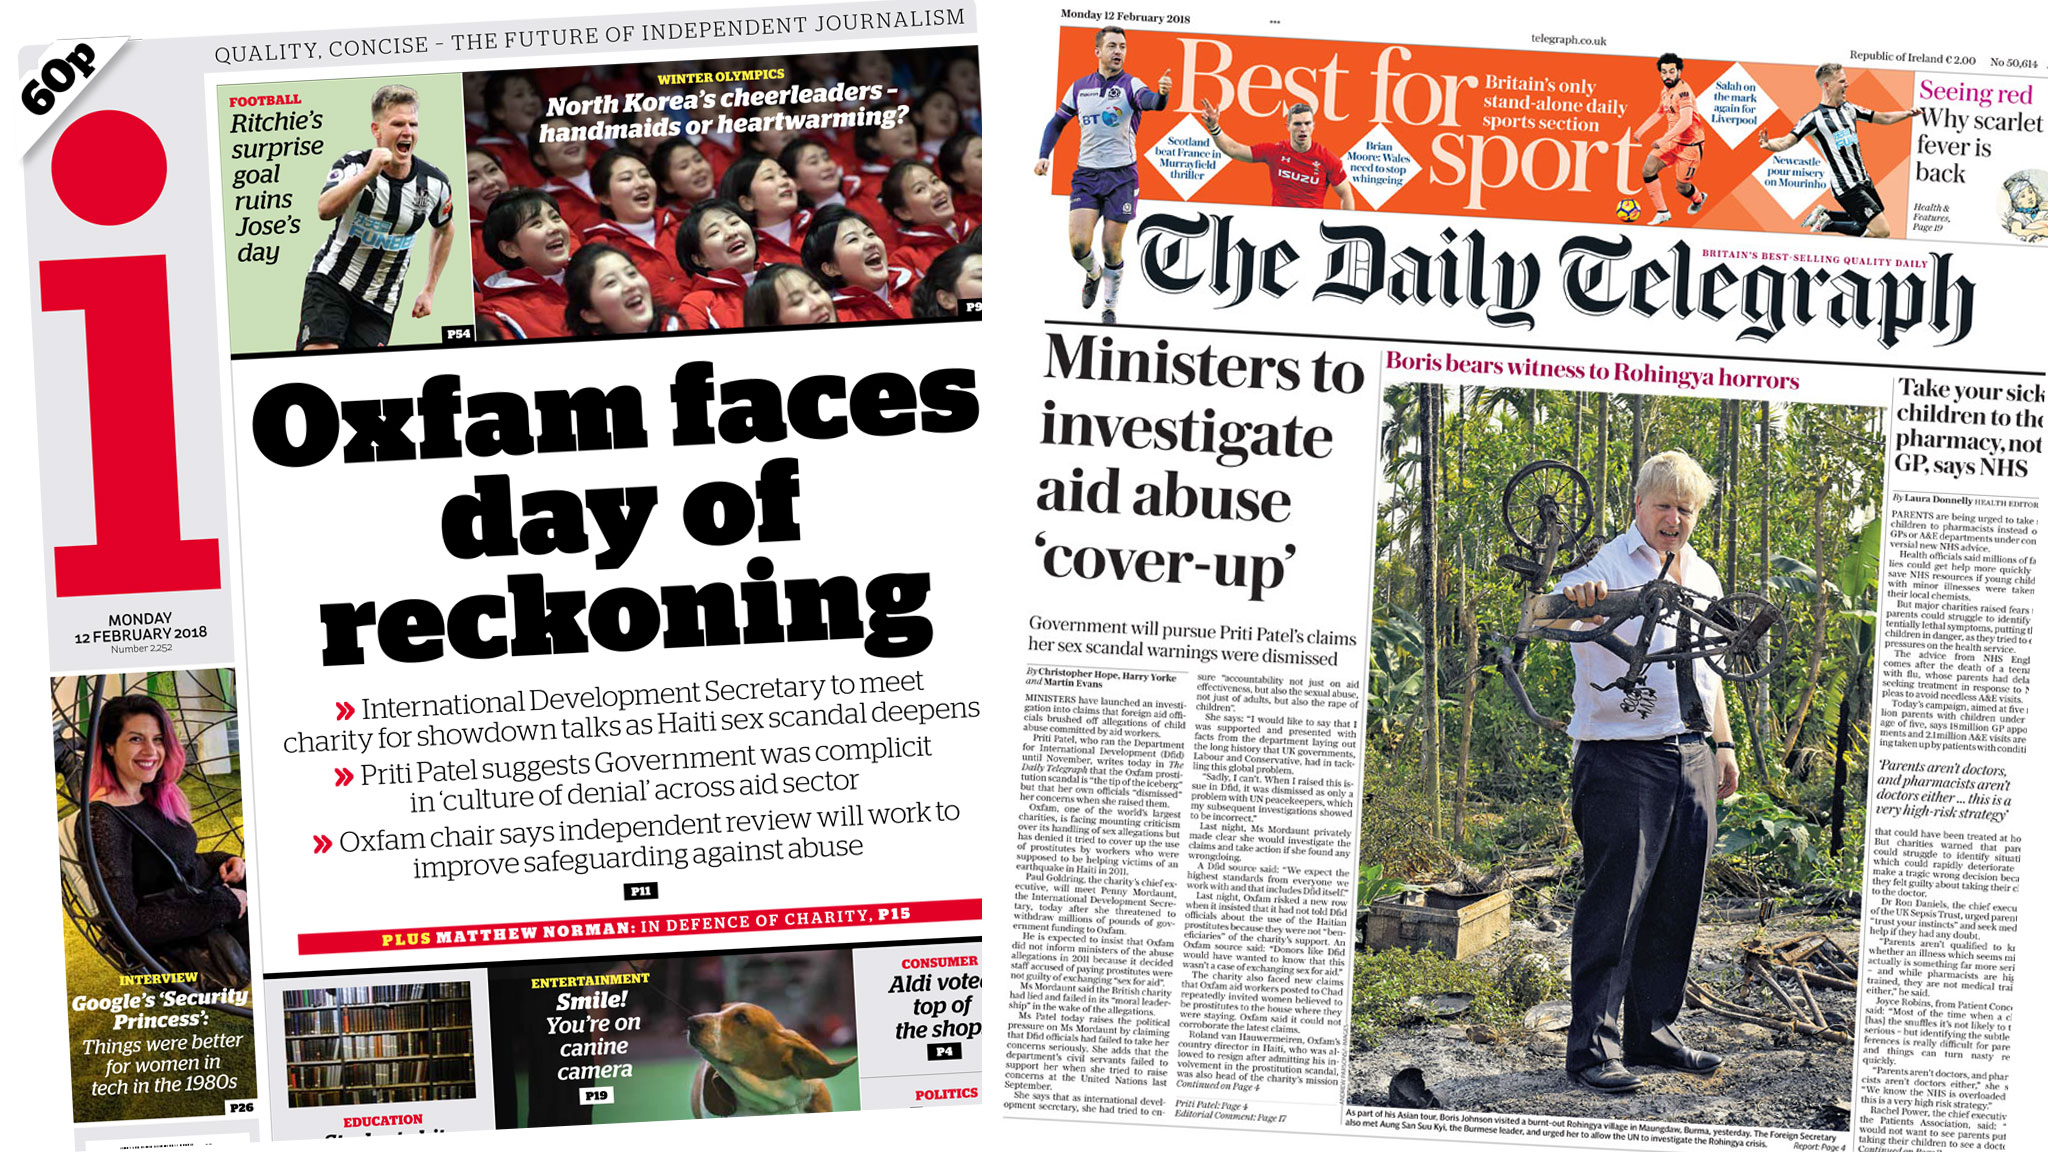 The i and the Daily Telegraph front pages